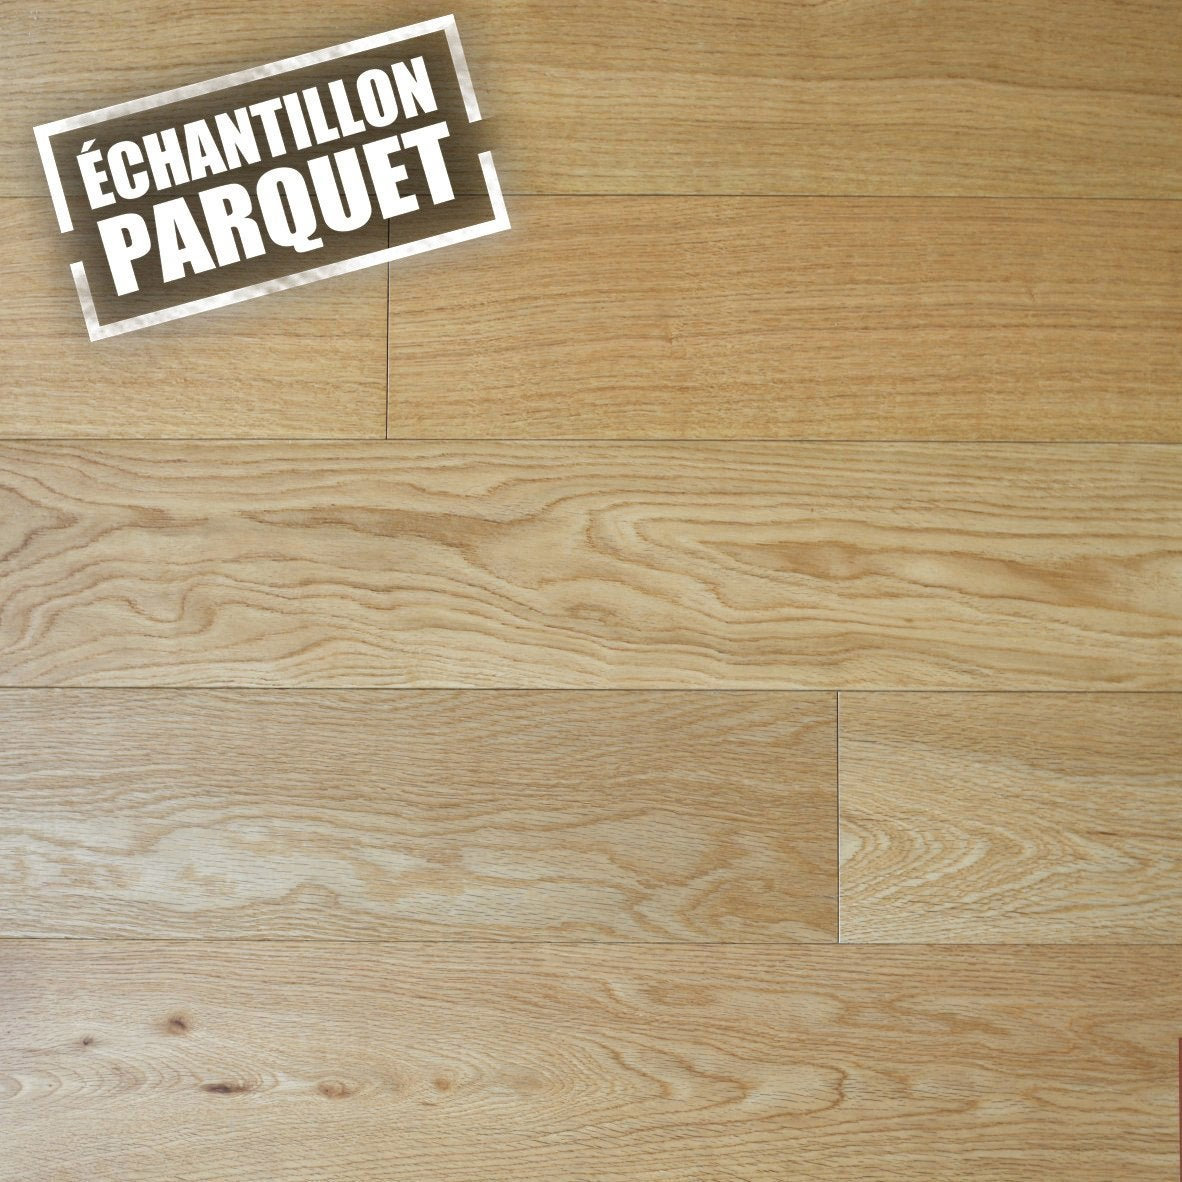 echantillon de parquet contrecoll legno artens l ch ne. Black Bedroom Furniture Sets. Home Design Ideas